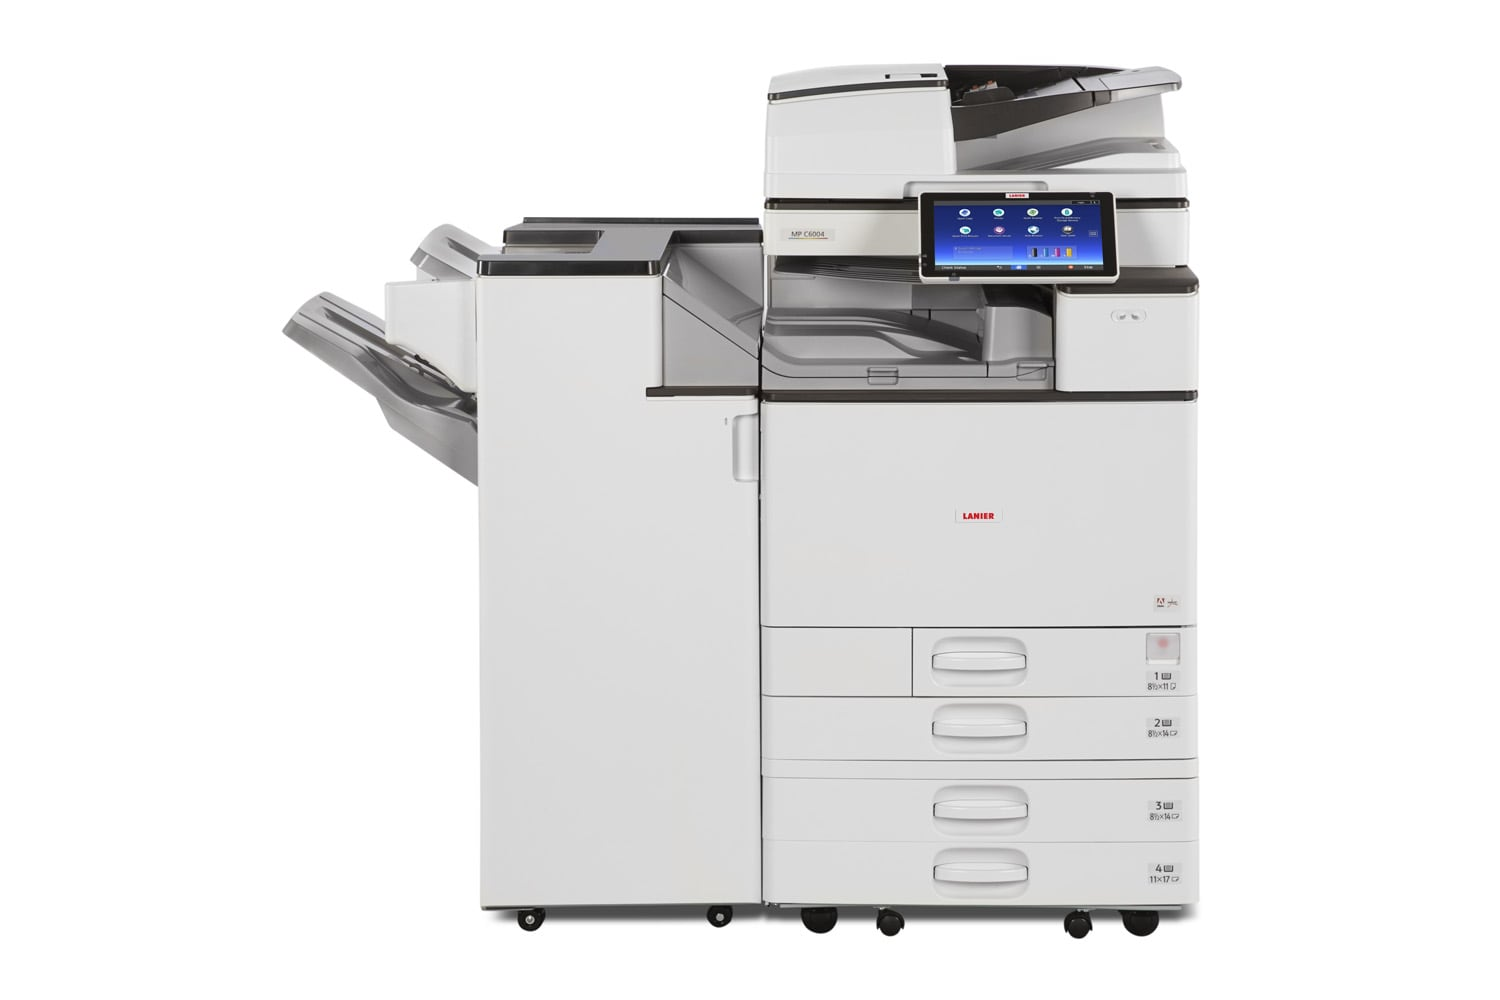 Ricoh MPC6004 colour multifunction printer